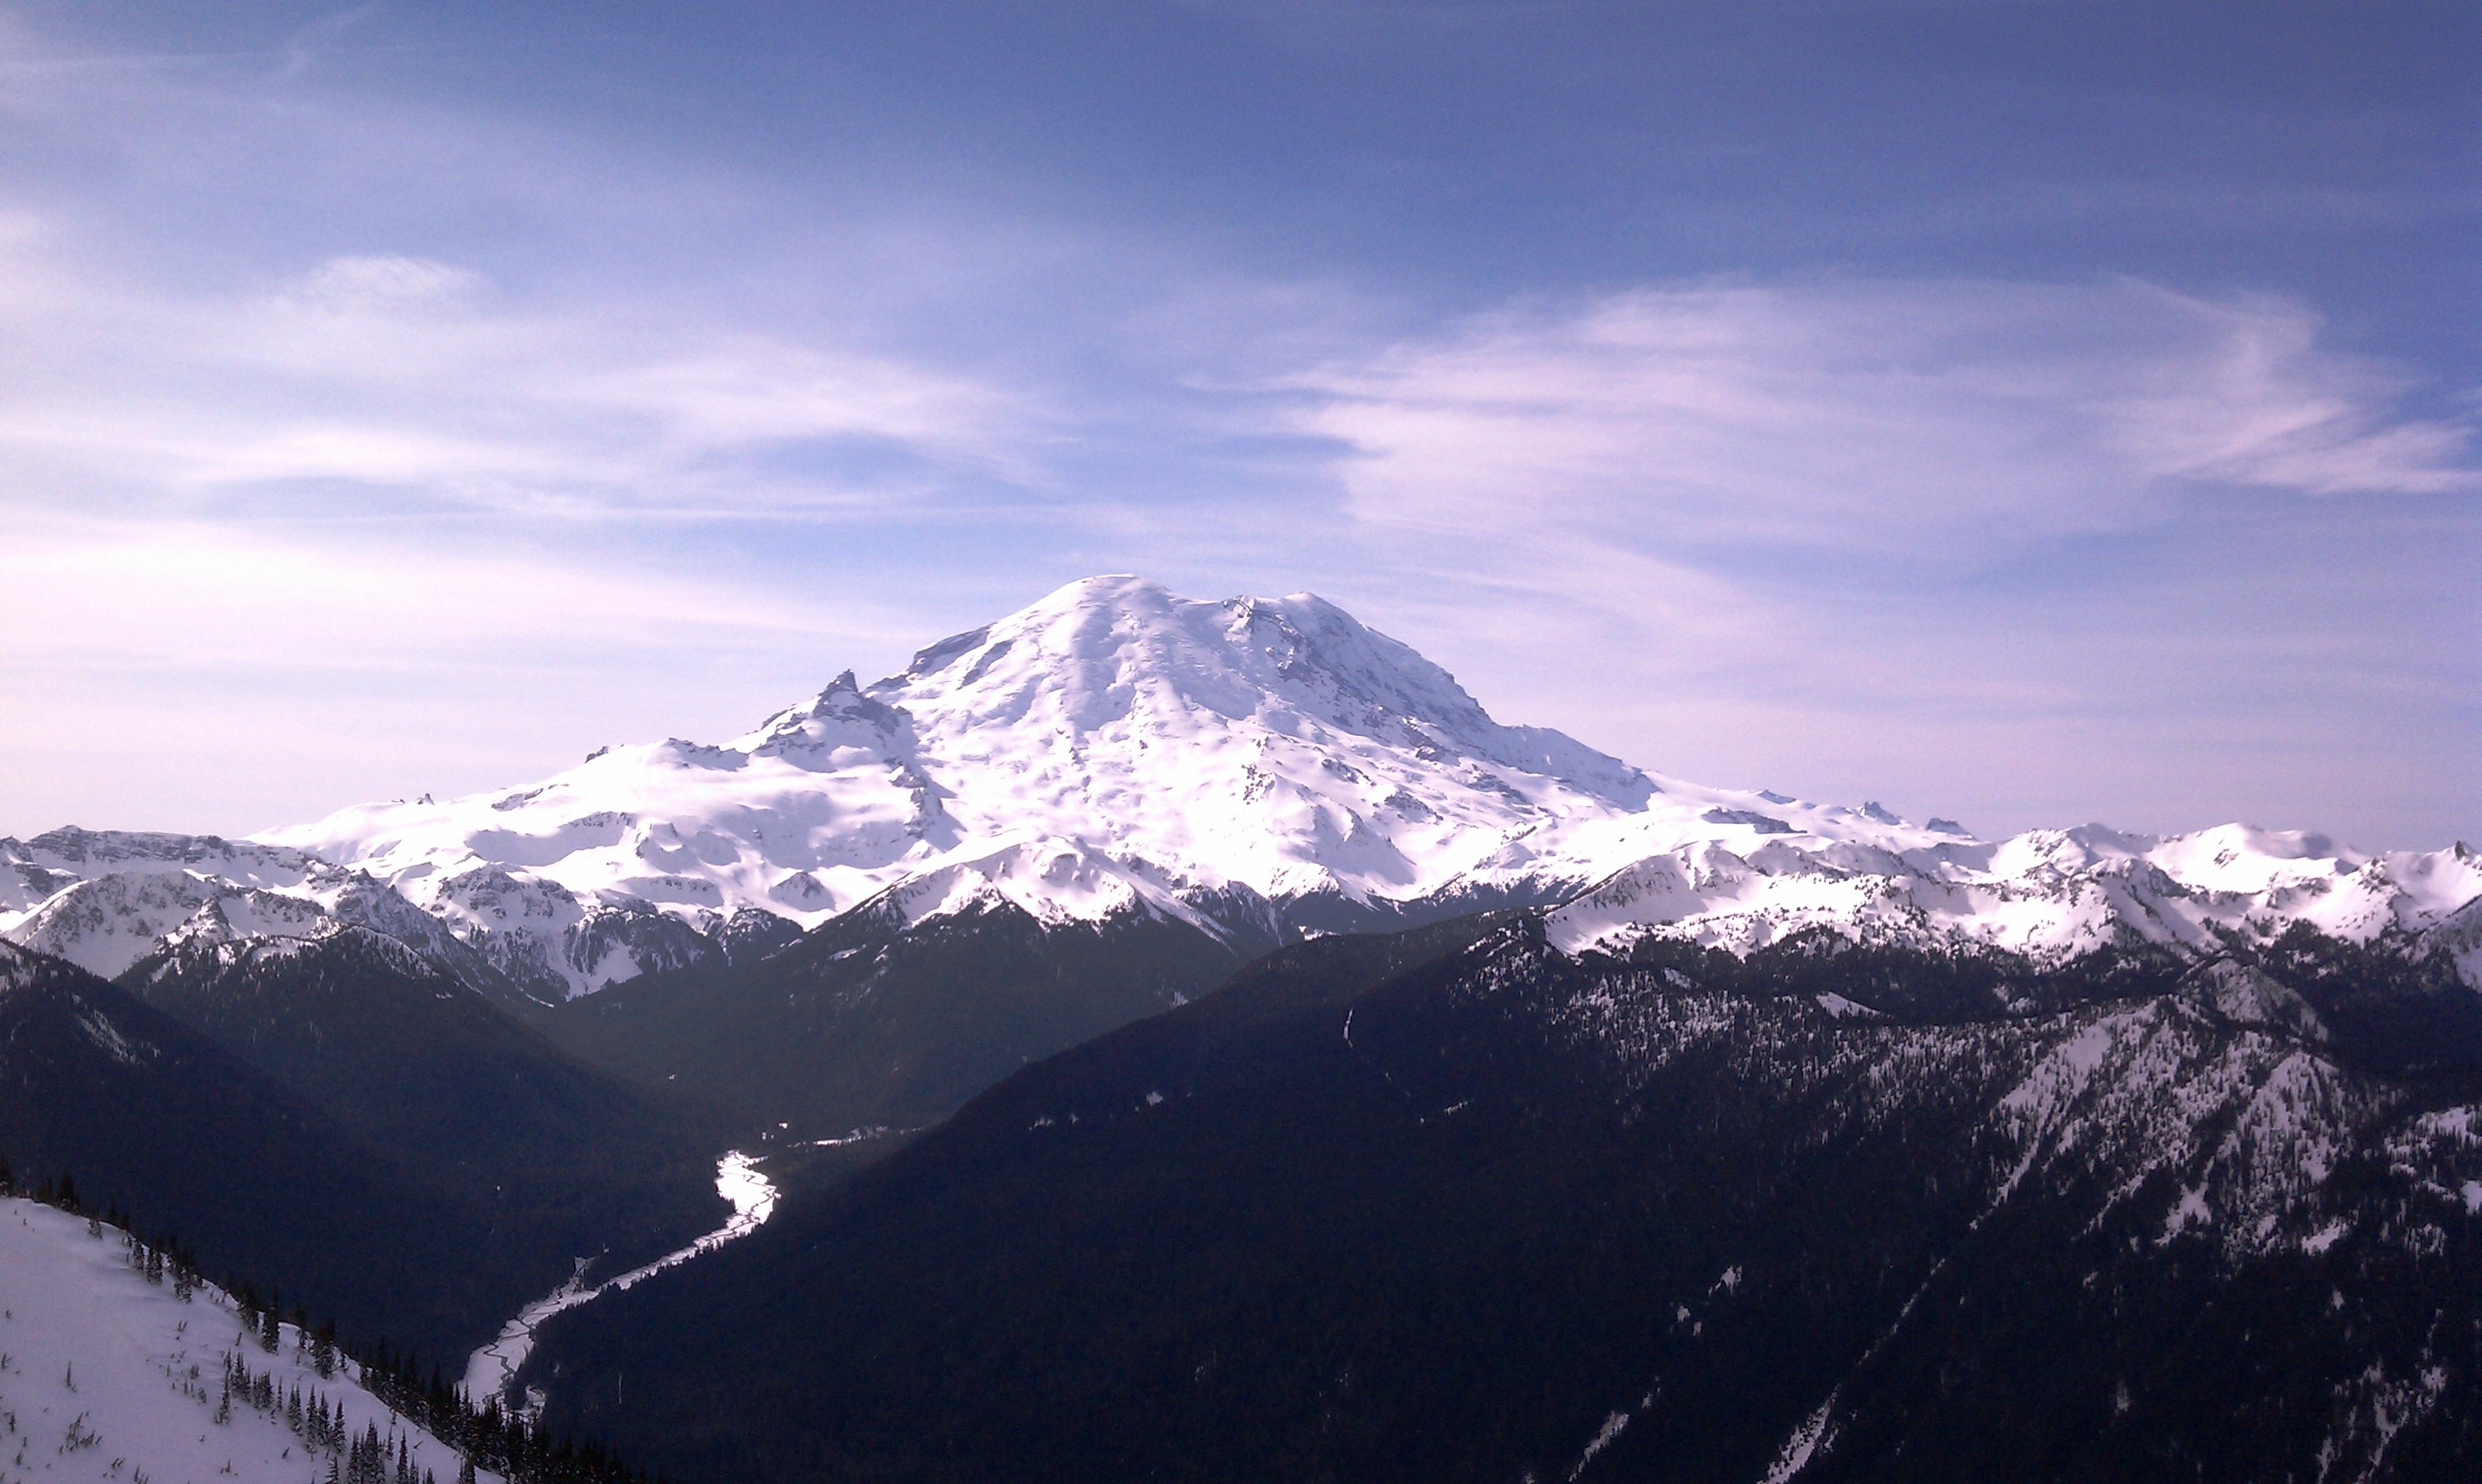 Mt. Rainier. (Photo by Dustin Balderach)